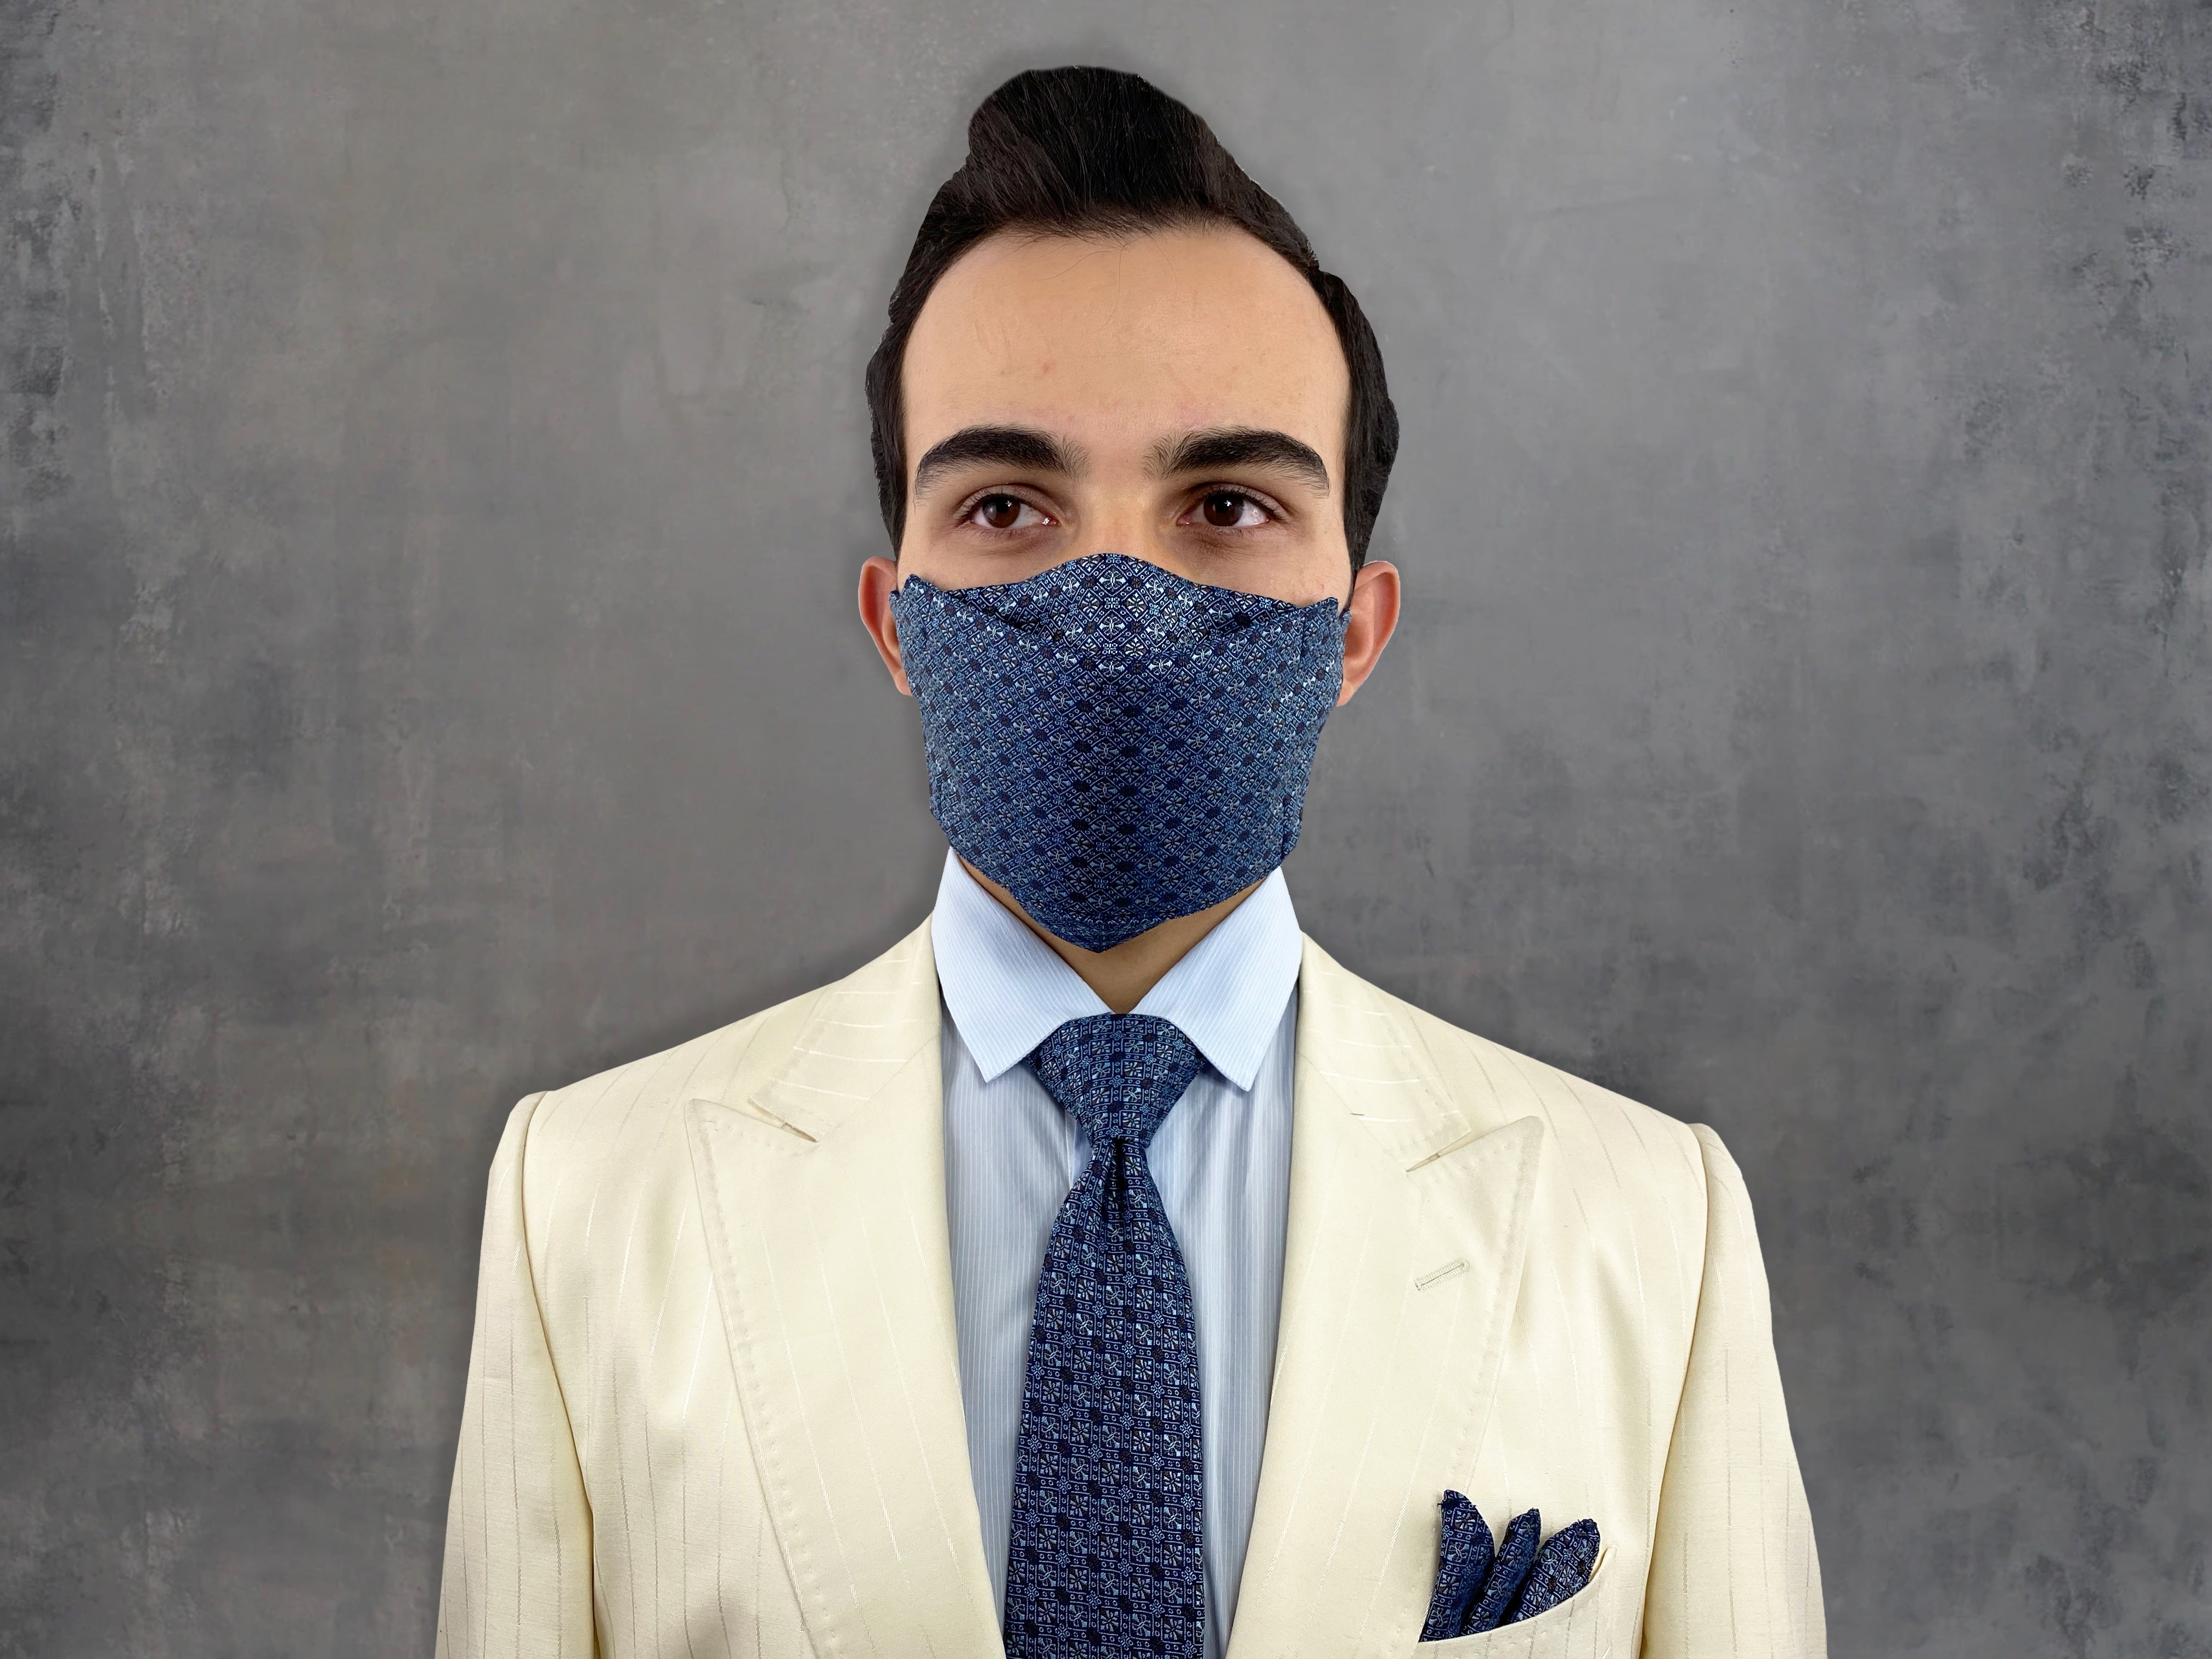 mask and tie combo